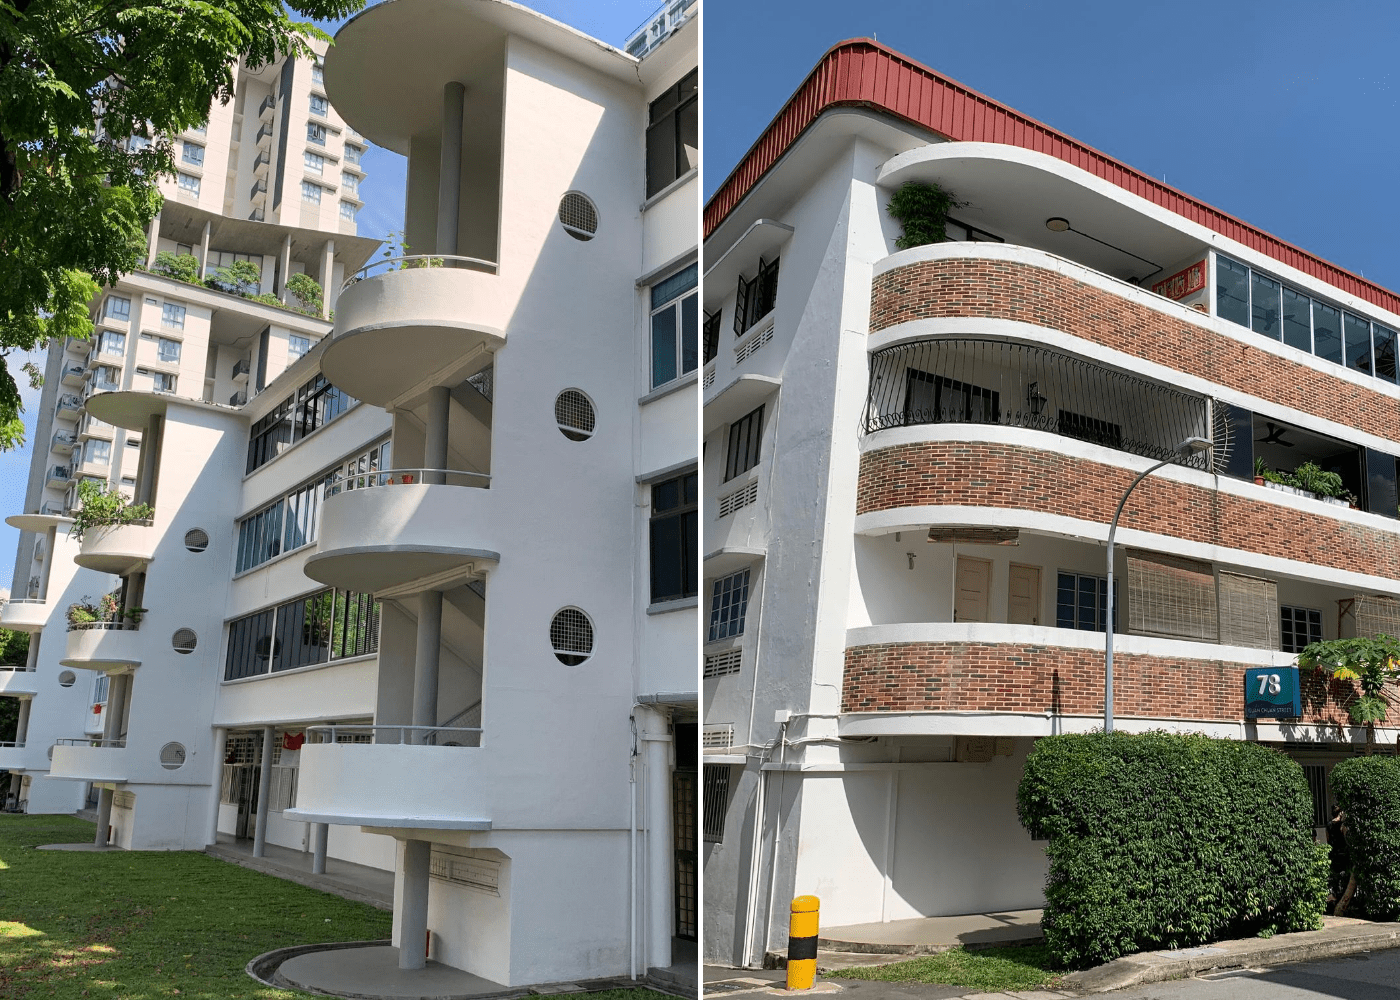 Tiong Bahru | HDB blocks in Singapore with unique designs